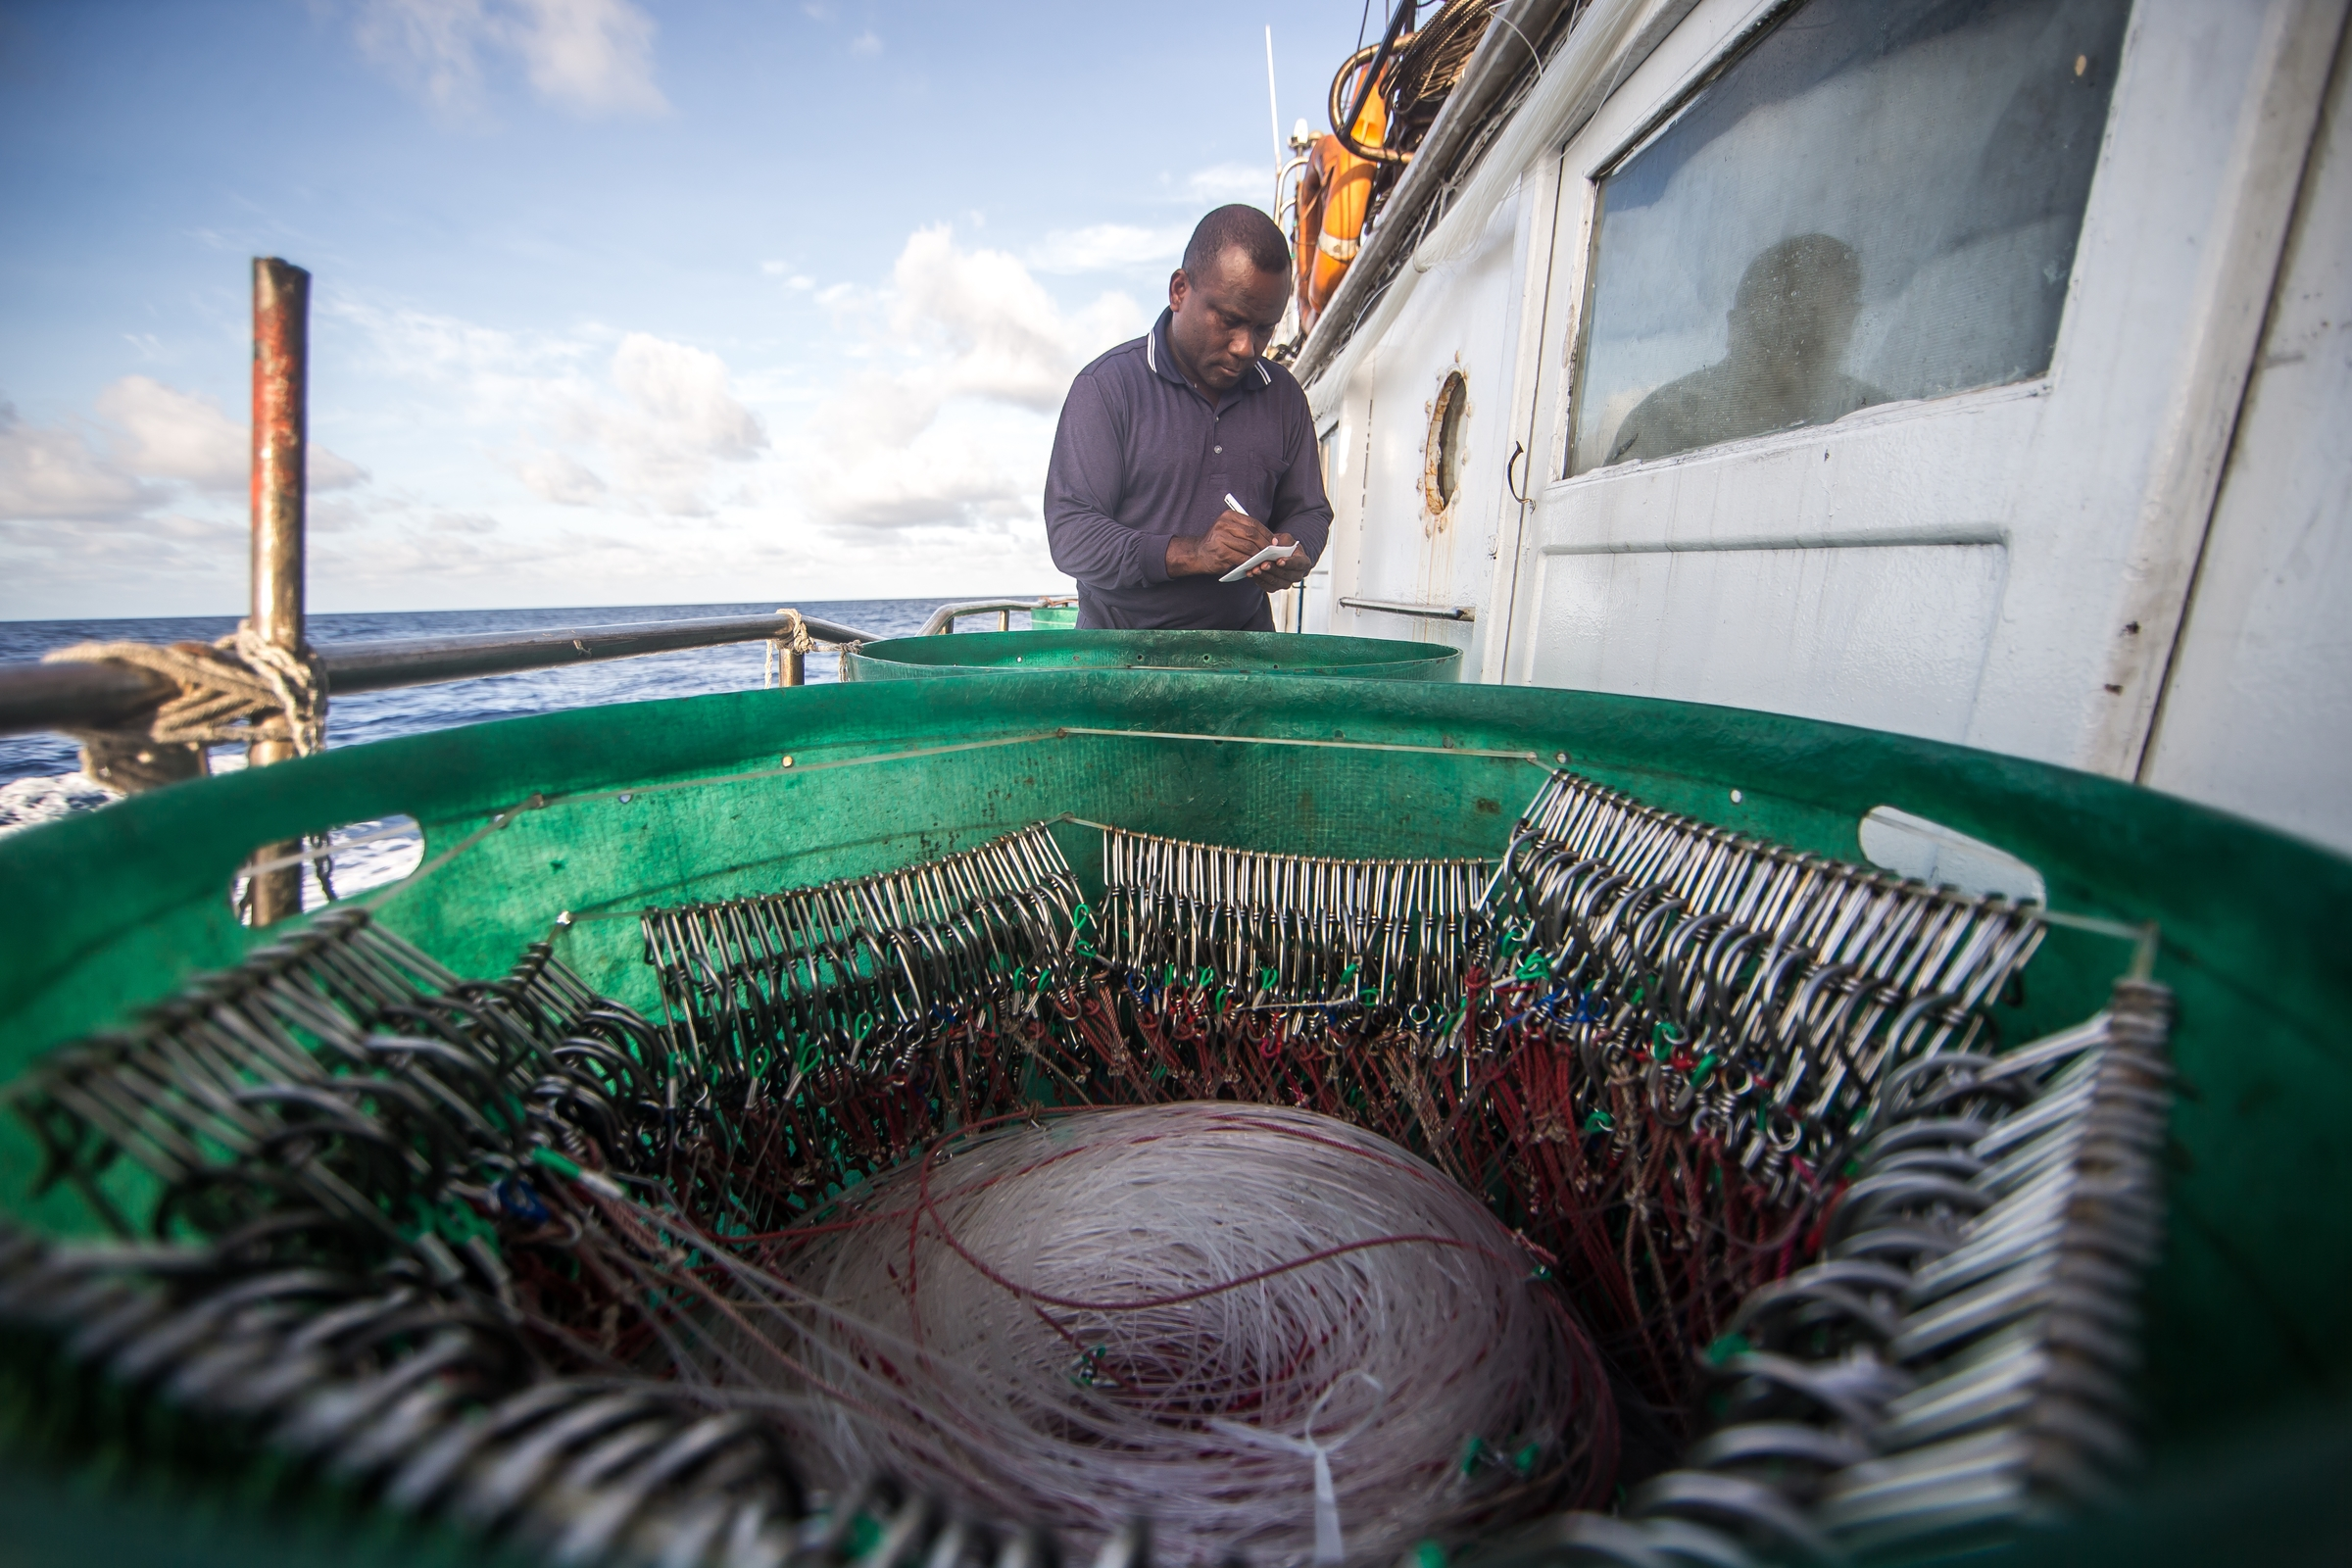 Palau - Philippines - The Nature Conservancy is working with fishermen in Palau to test new fishing practices and methods to reduce bycatch, such as rays, turtles, and silky sharks, and to sustainably manage the Pacific tuna fishery, the world�s largest tuna fishery. Photo by Jonne Roriz/The Nature Conservancy